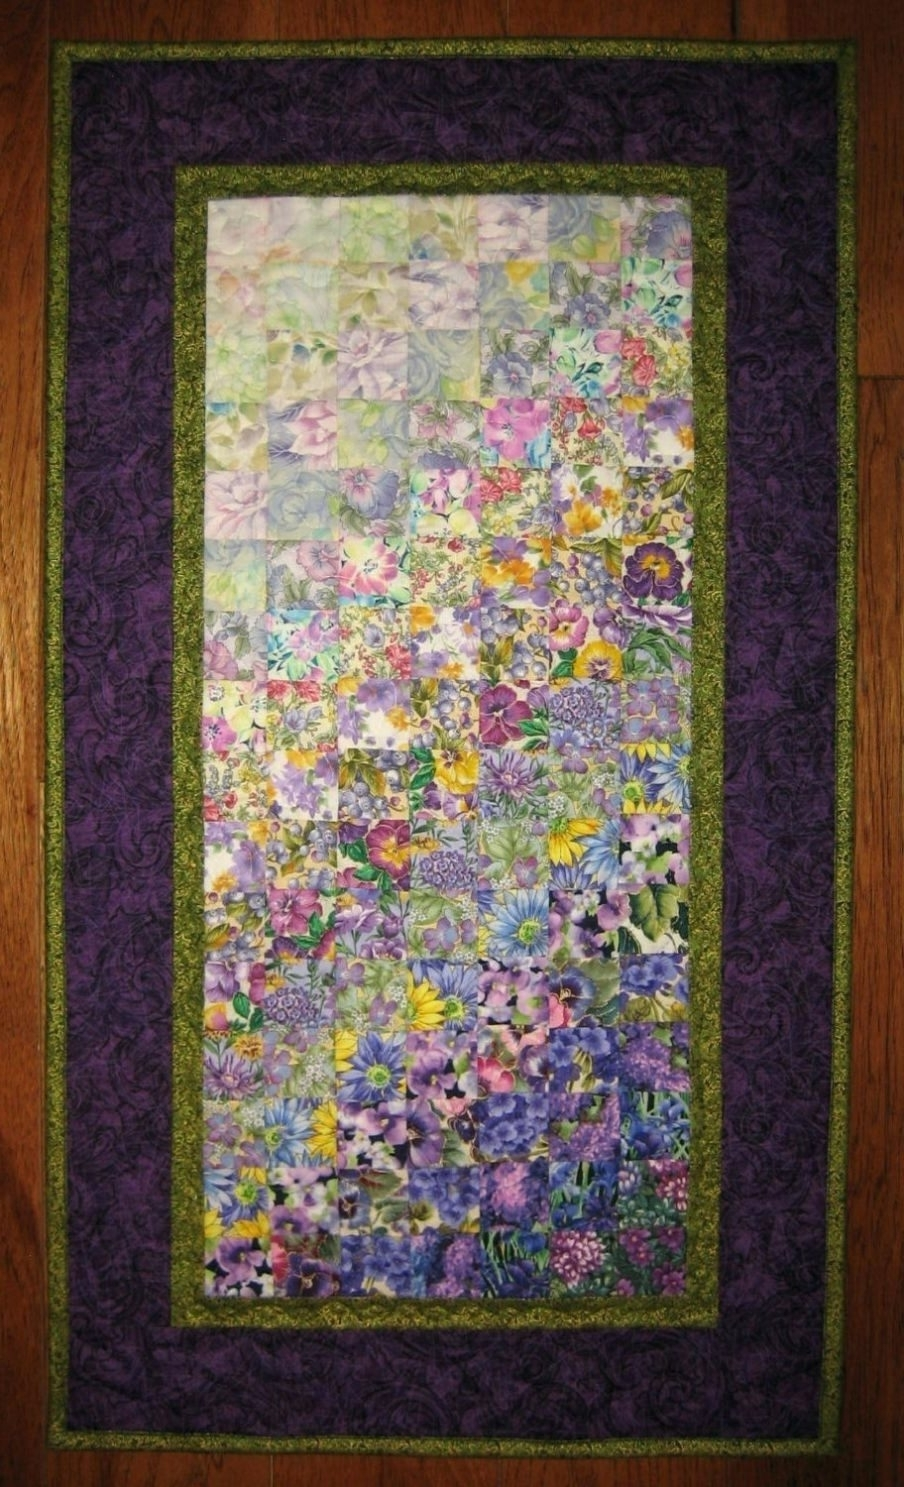 Current Wall Arts ~ Fabric Panel Wall Art How To Make Large Fabric Panel Intended For Diy Fabric Panel Wall Art (View 2 of 15)